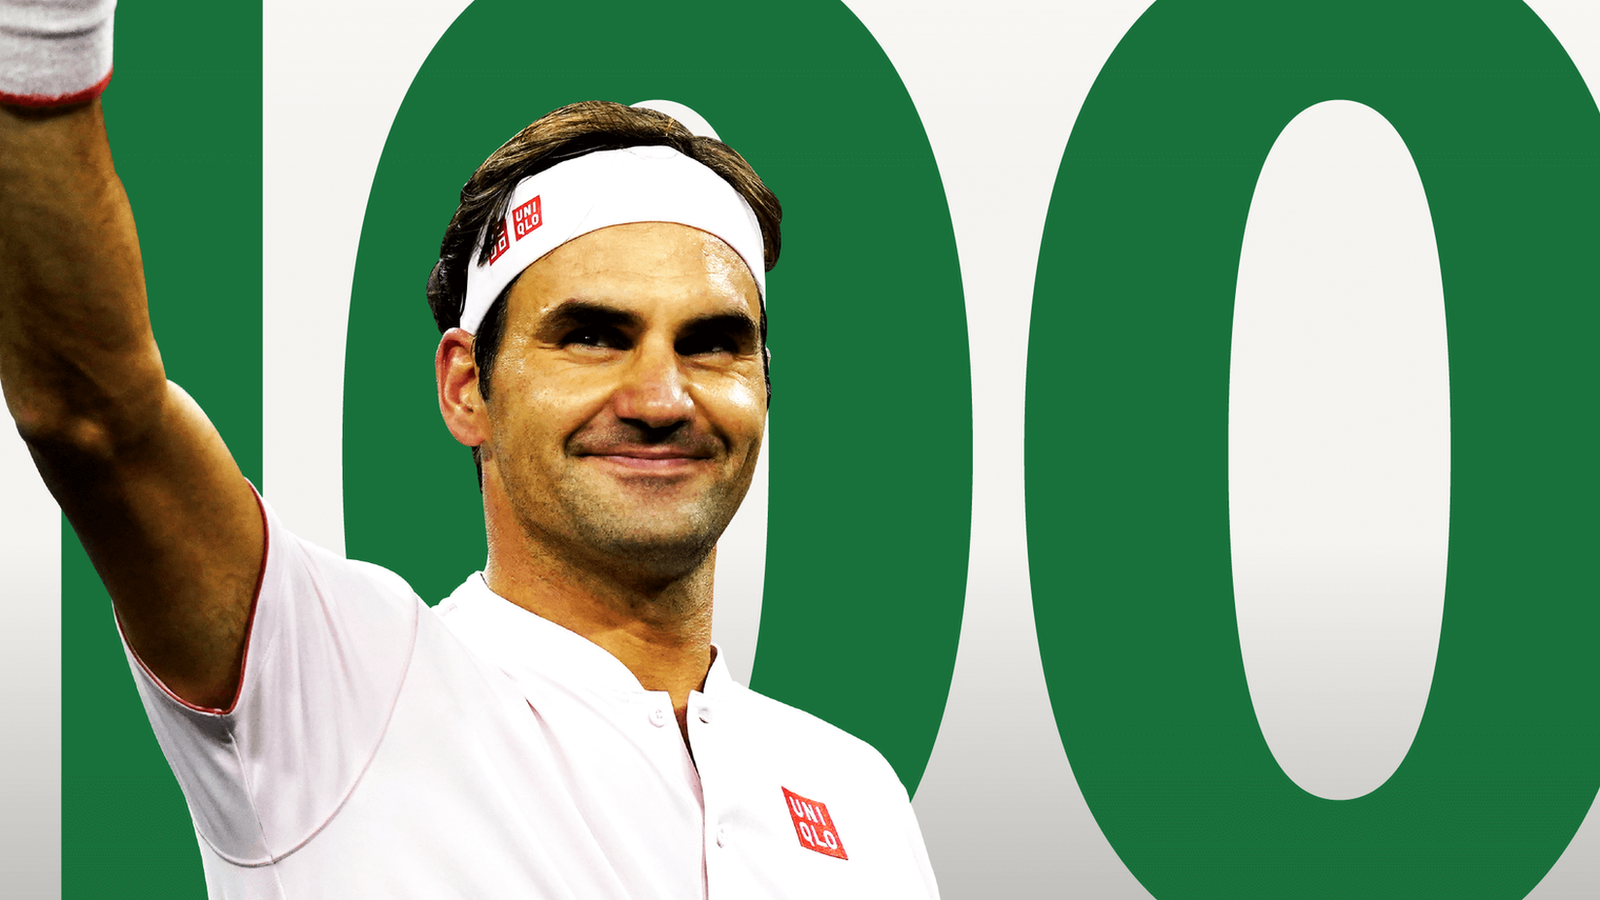 Roger Federer's 100 titles in numbers: Where has he won most? Who has he beaten most?